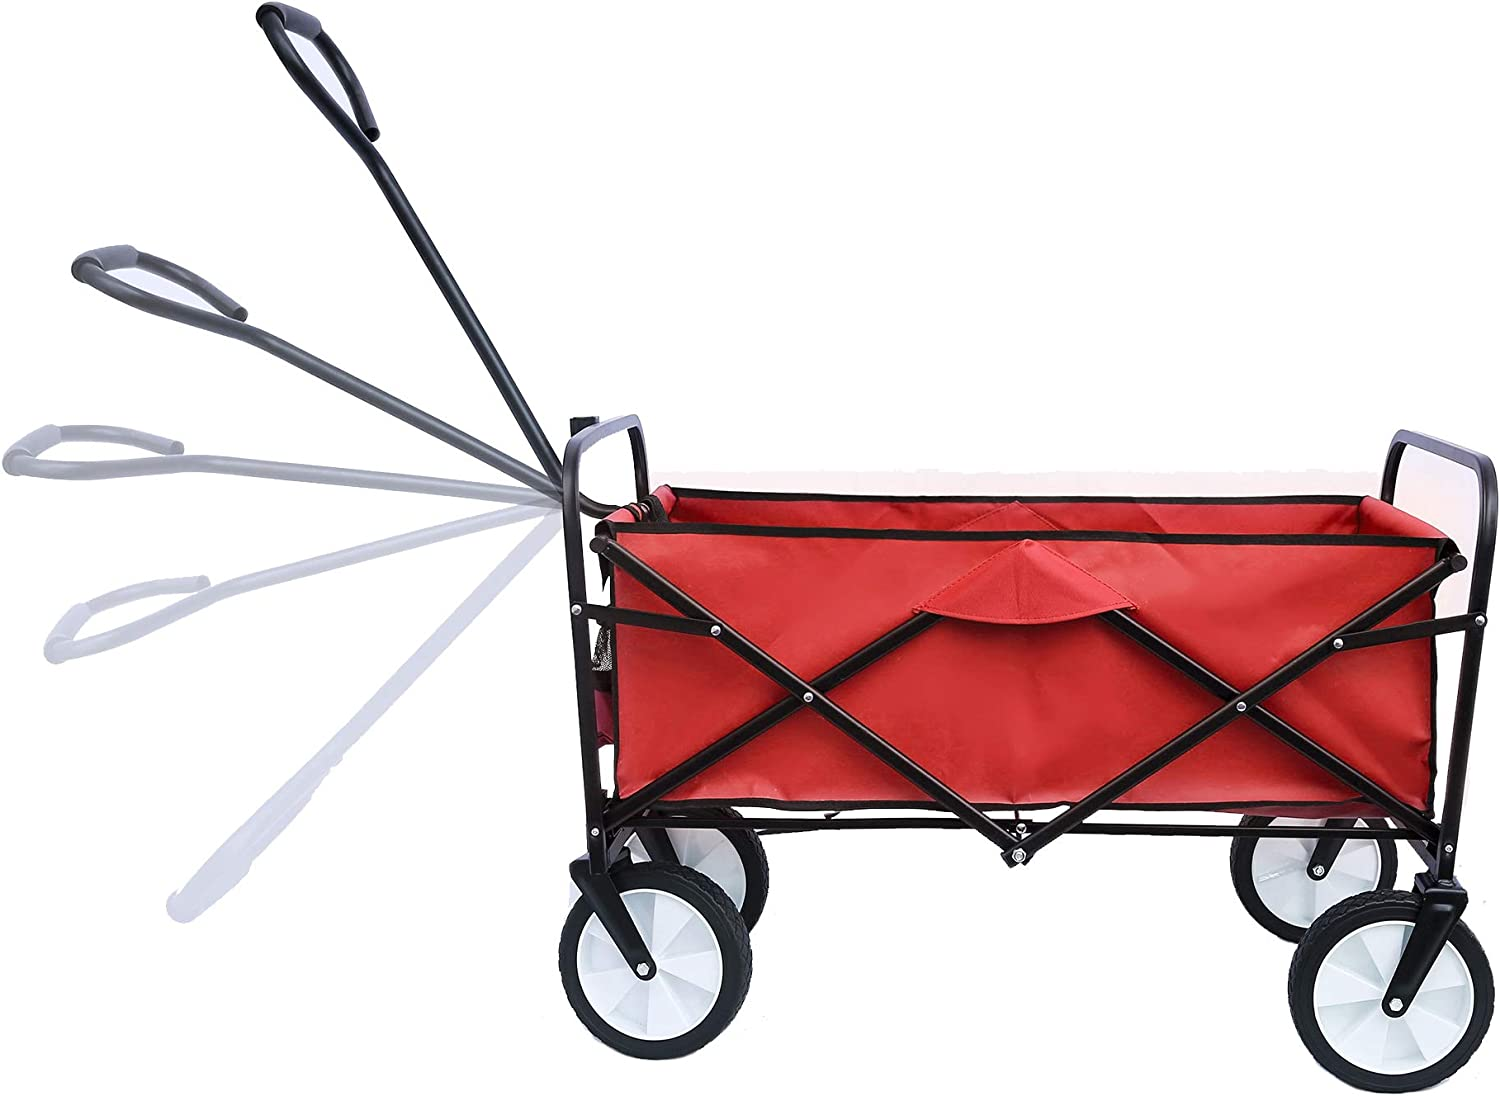 Folding Utility Wagon with Wheels Cover Bag Drink Holders, Adjustable Handle, Outdoor Cart for Garden Camping Shopping Beach